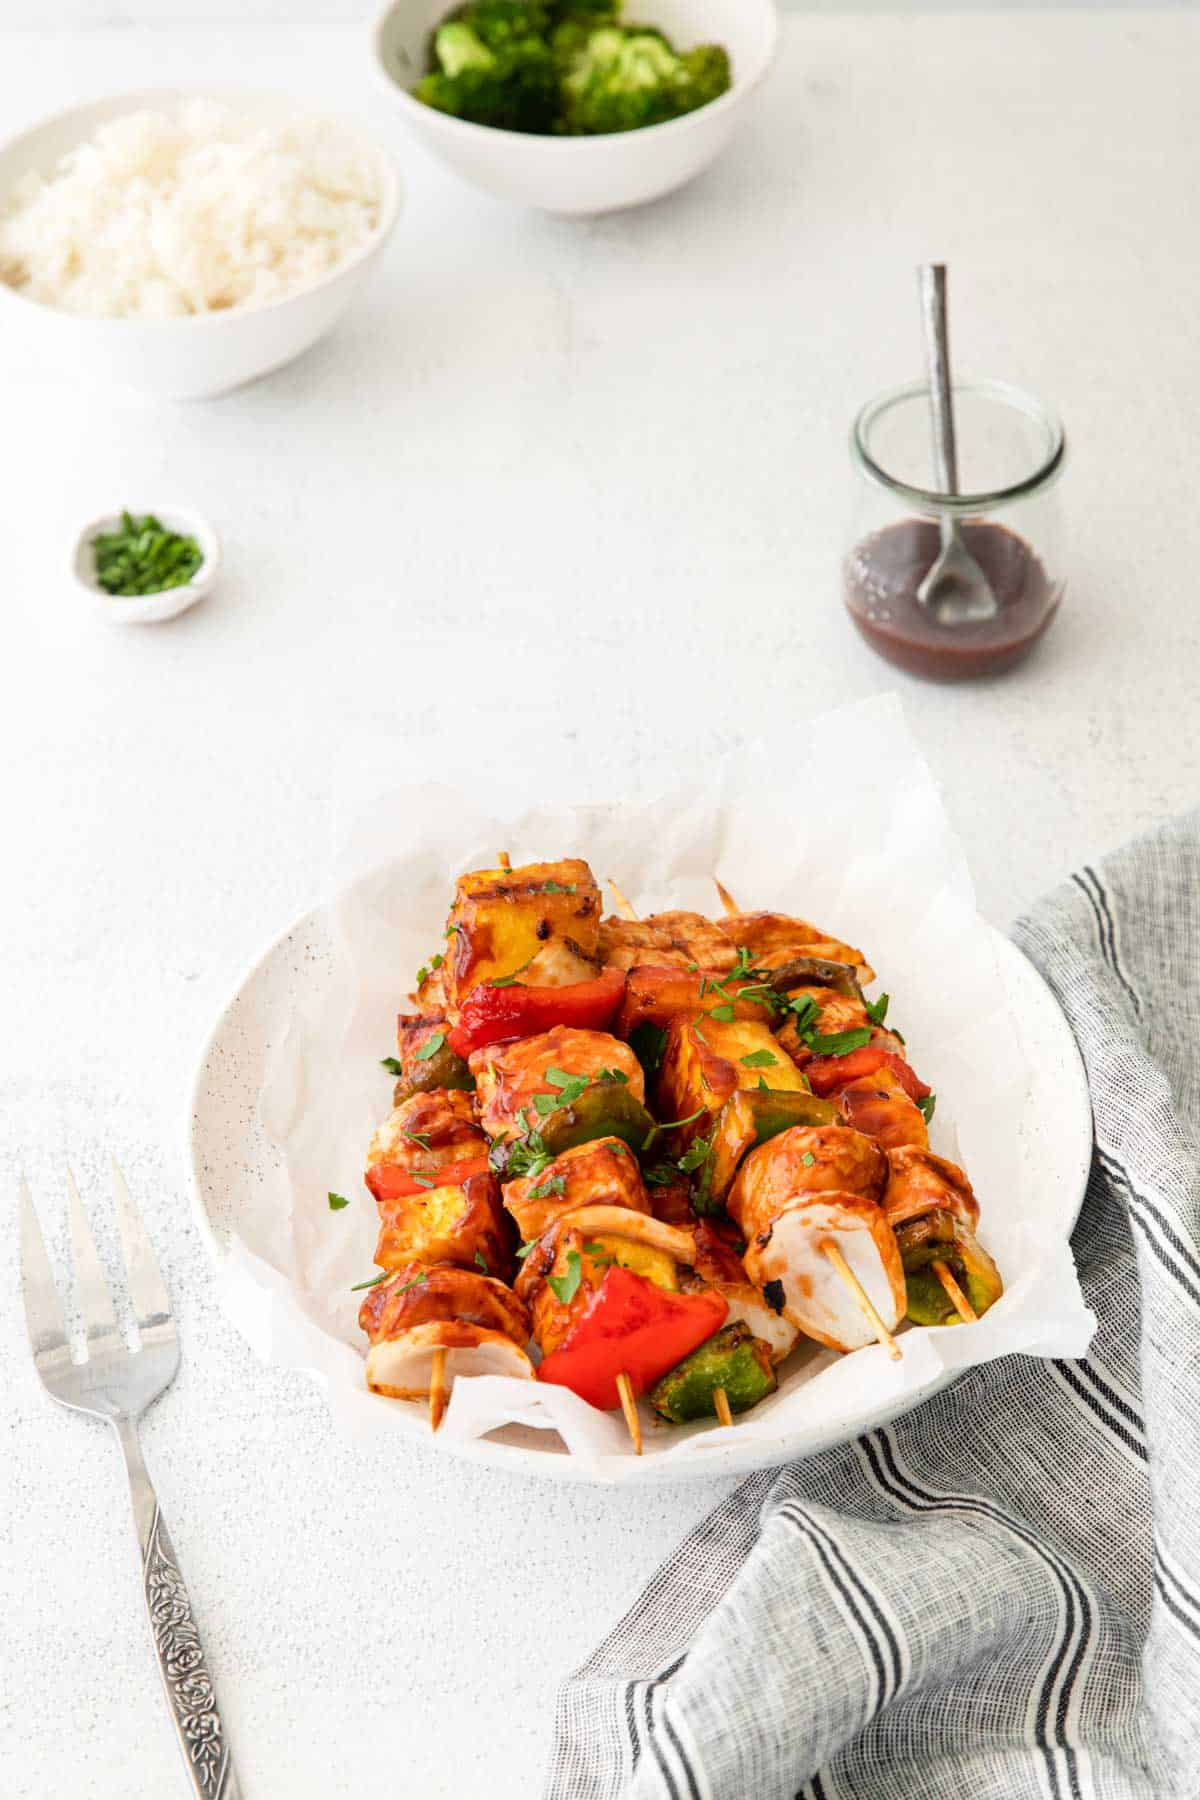 the completed grilled chicken kabobs recipe